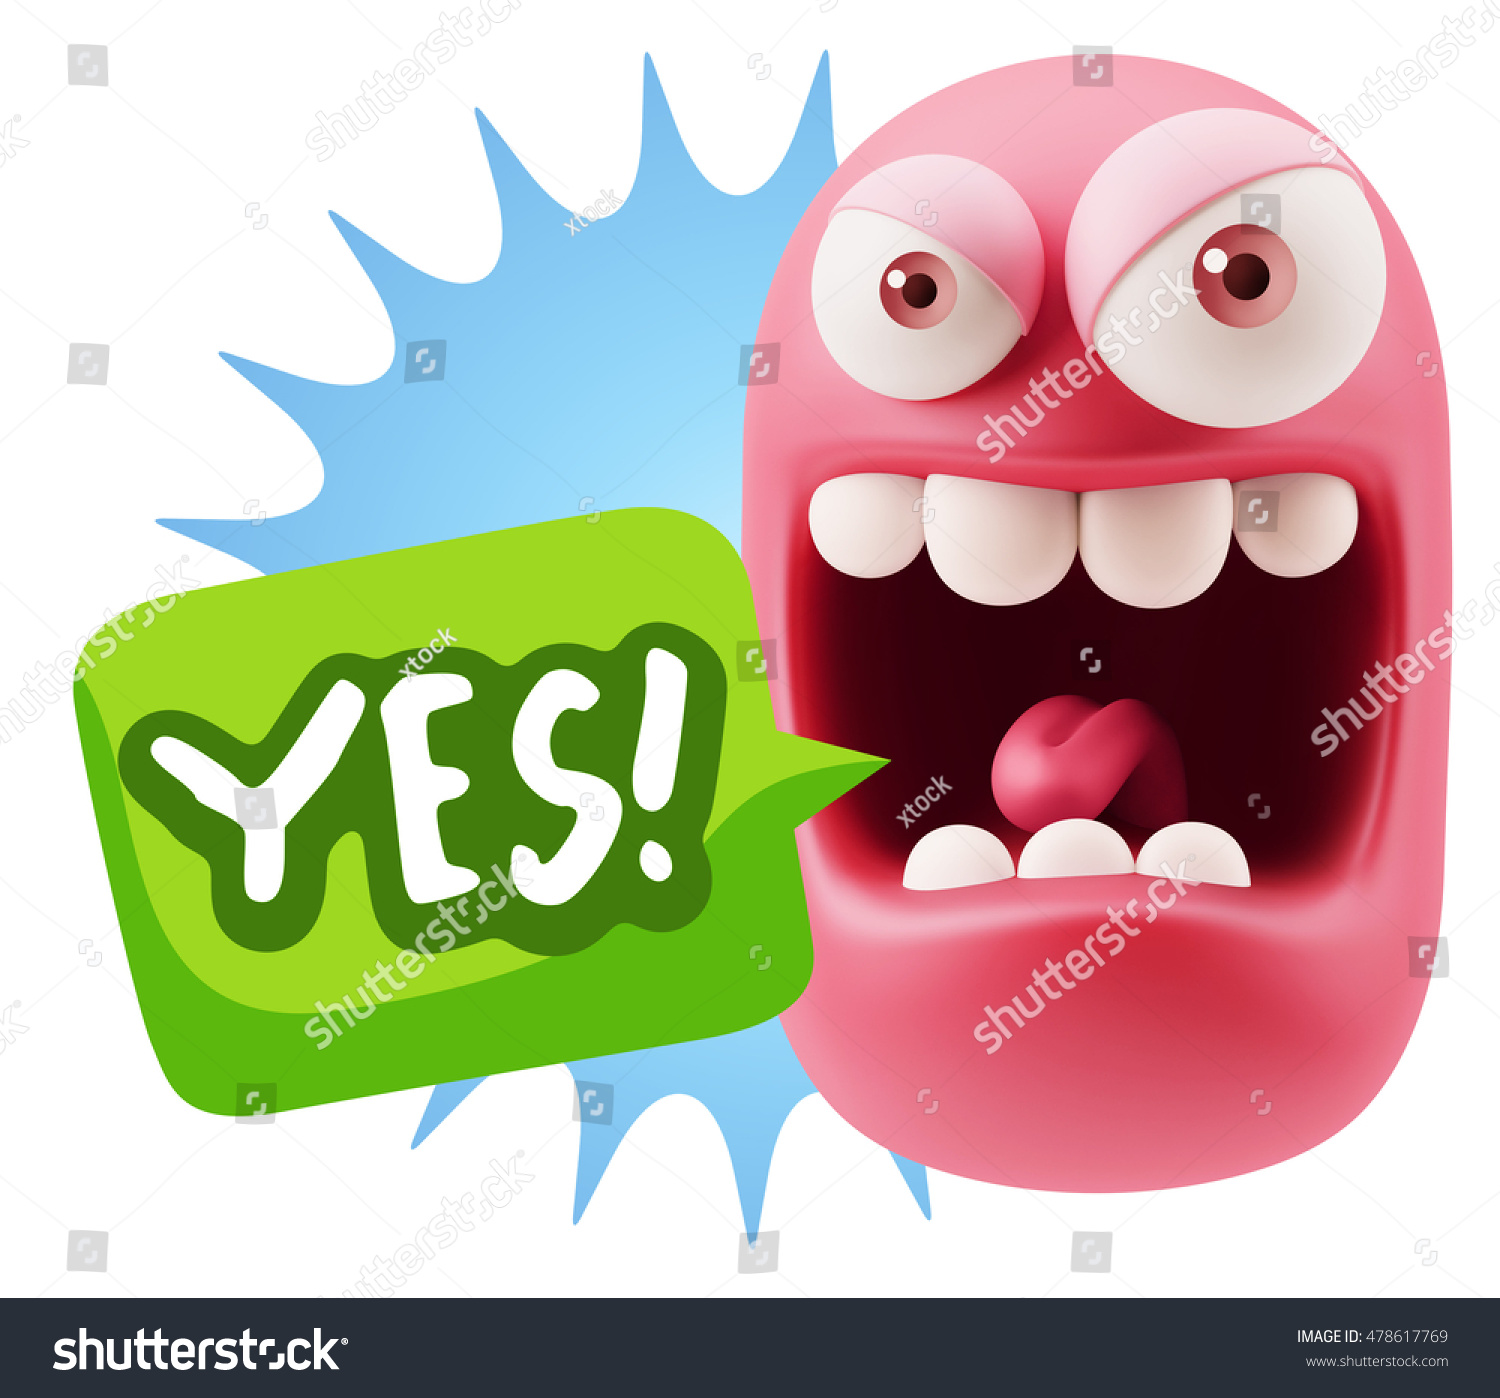 Stock illustration 3d red text quot yes quot stock illustration royalty - 3d Illustration Angry Face Emoticon Saying Yes With Colorful Speech Bubble